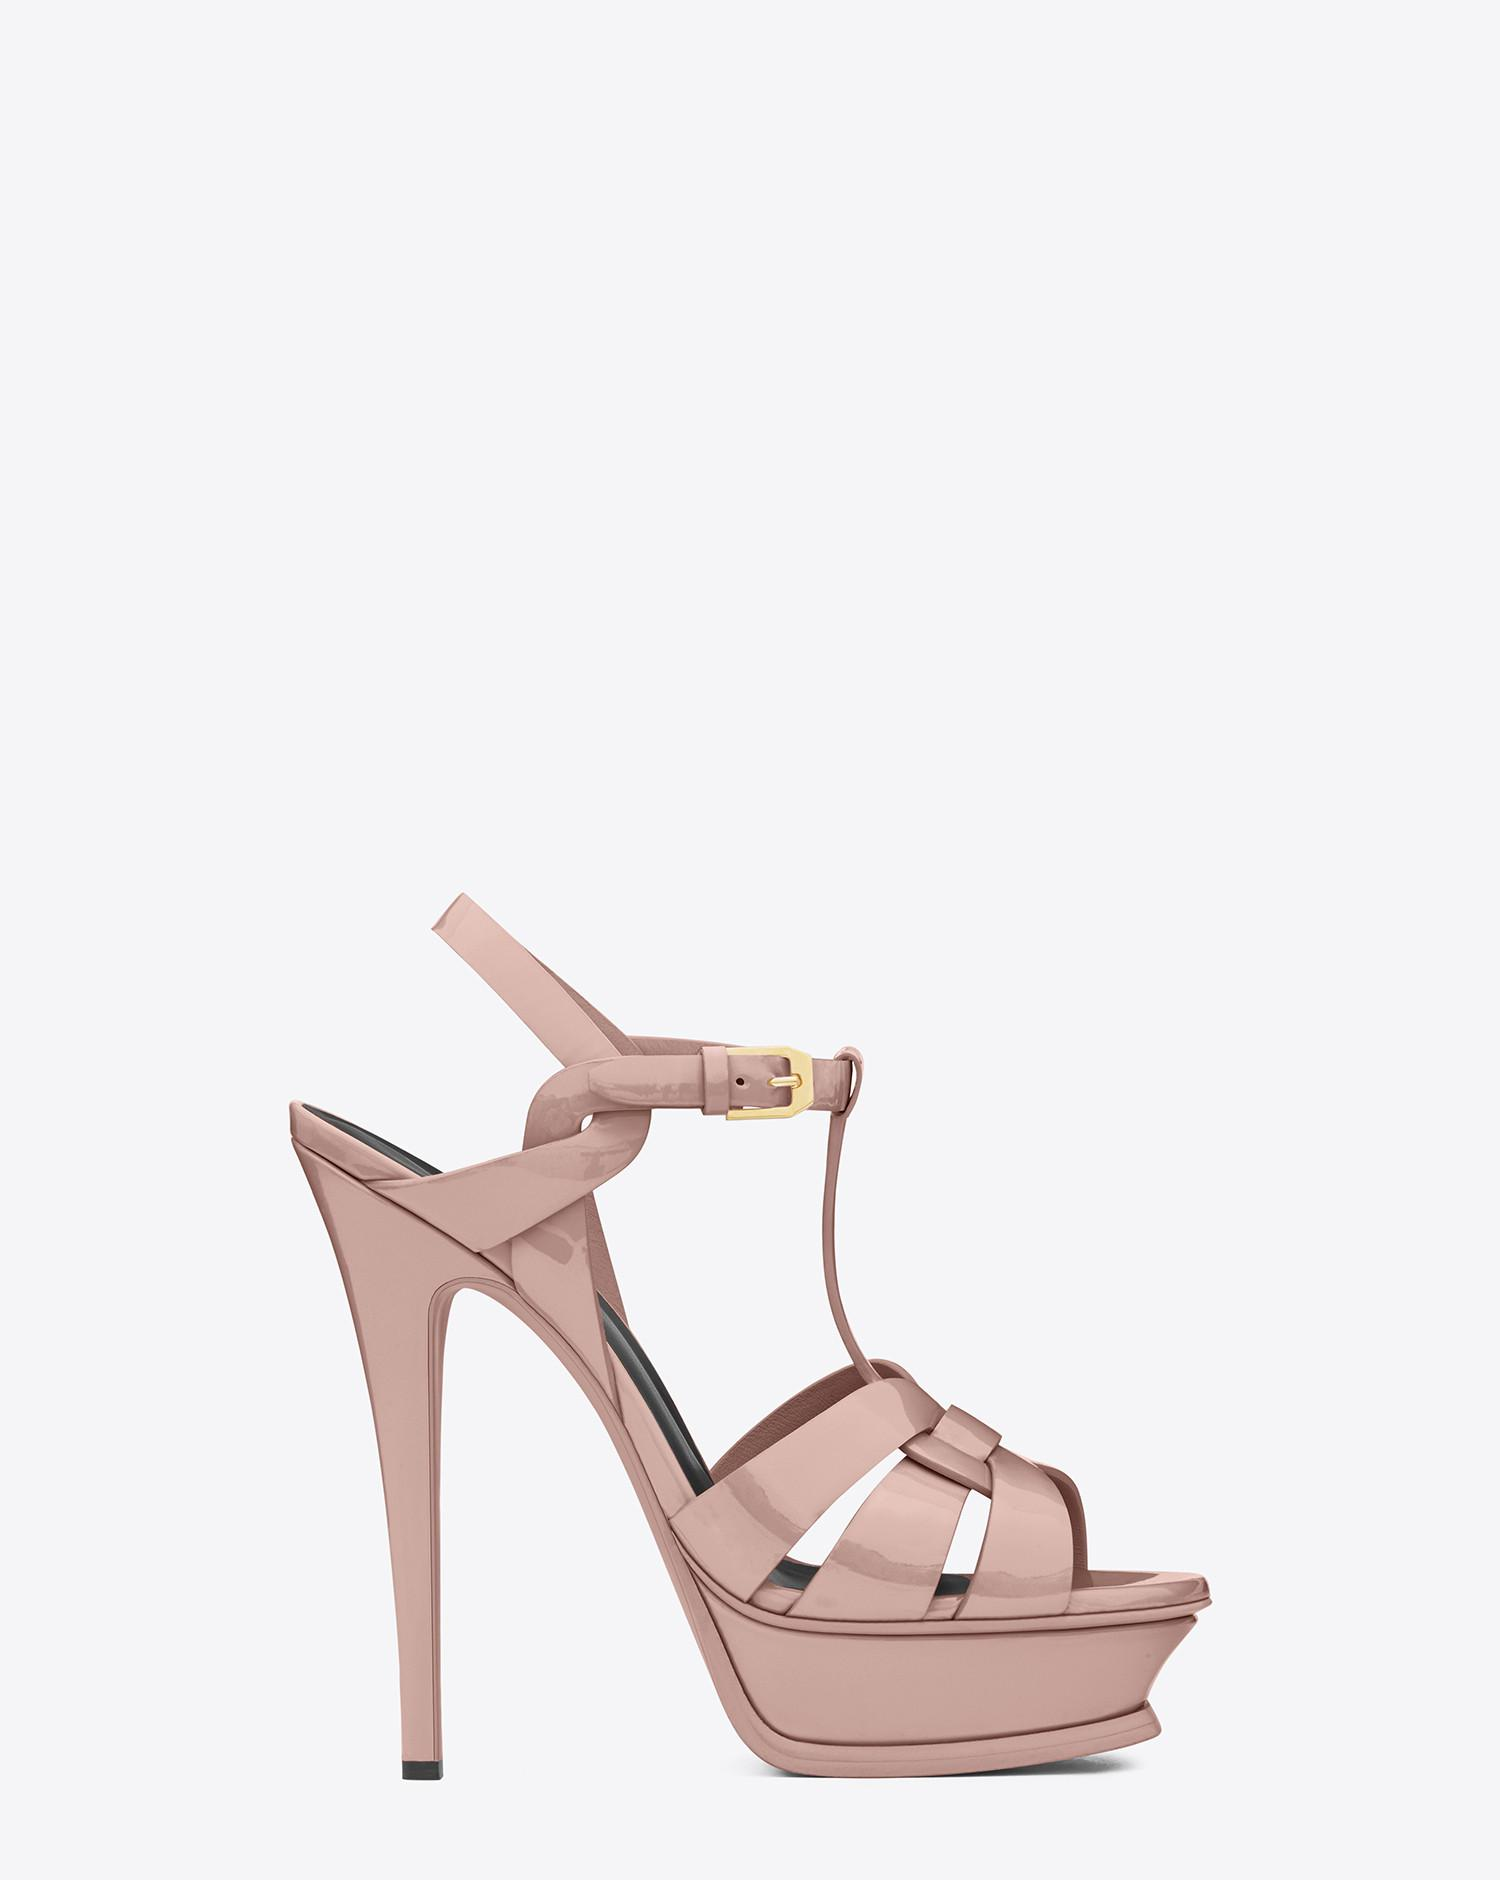 f492760b4 Saint Laurent Tribute Sandal In Patent Leather in Pink - Lyst